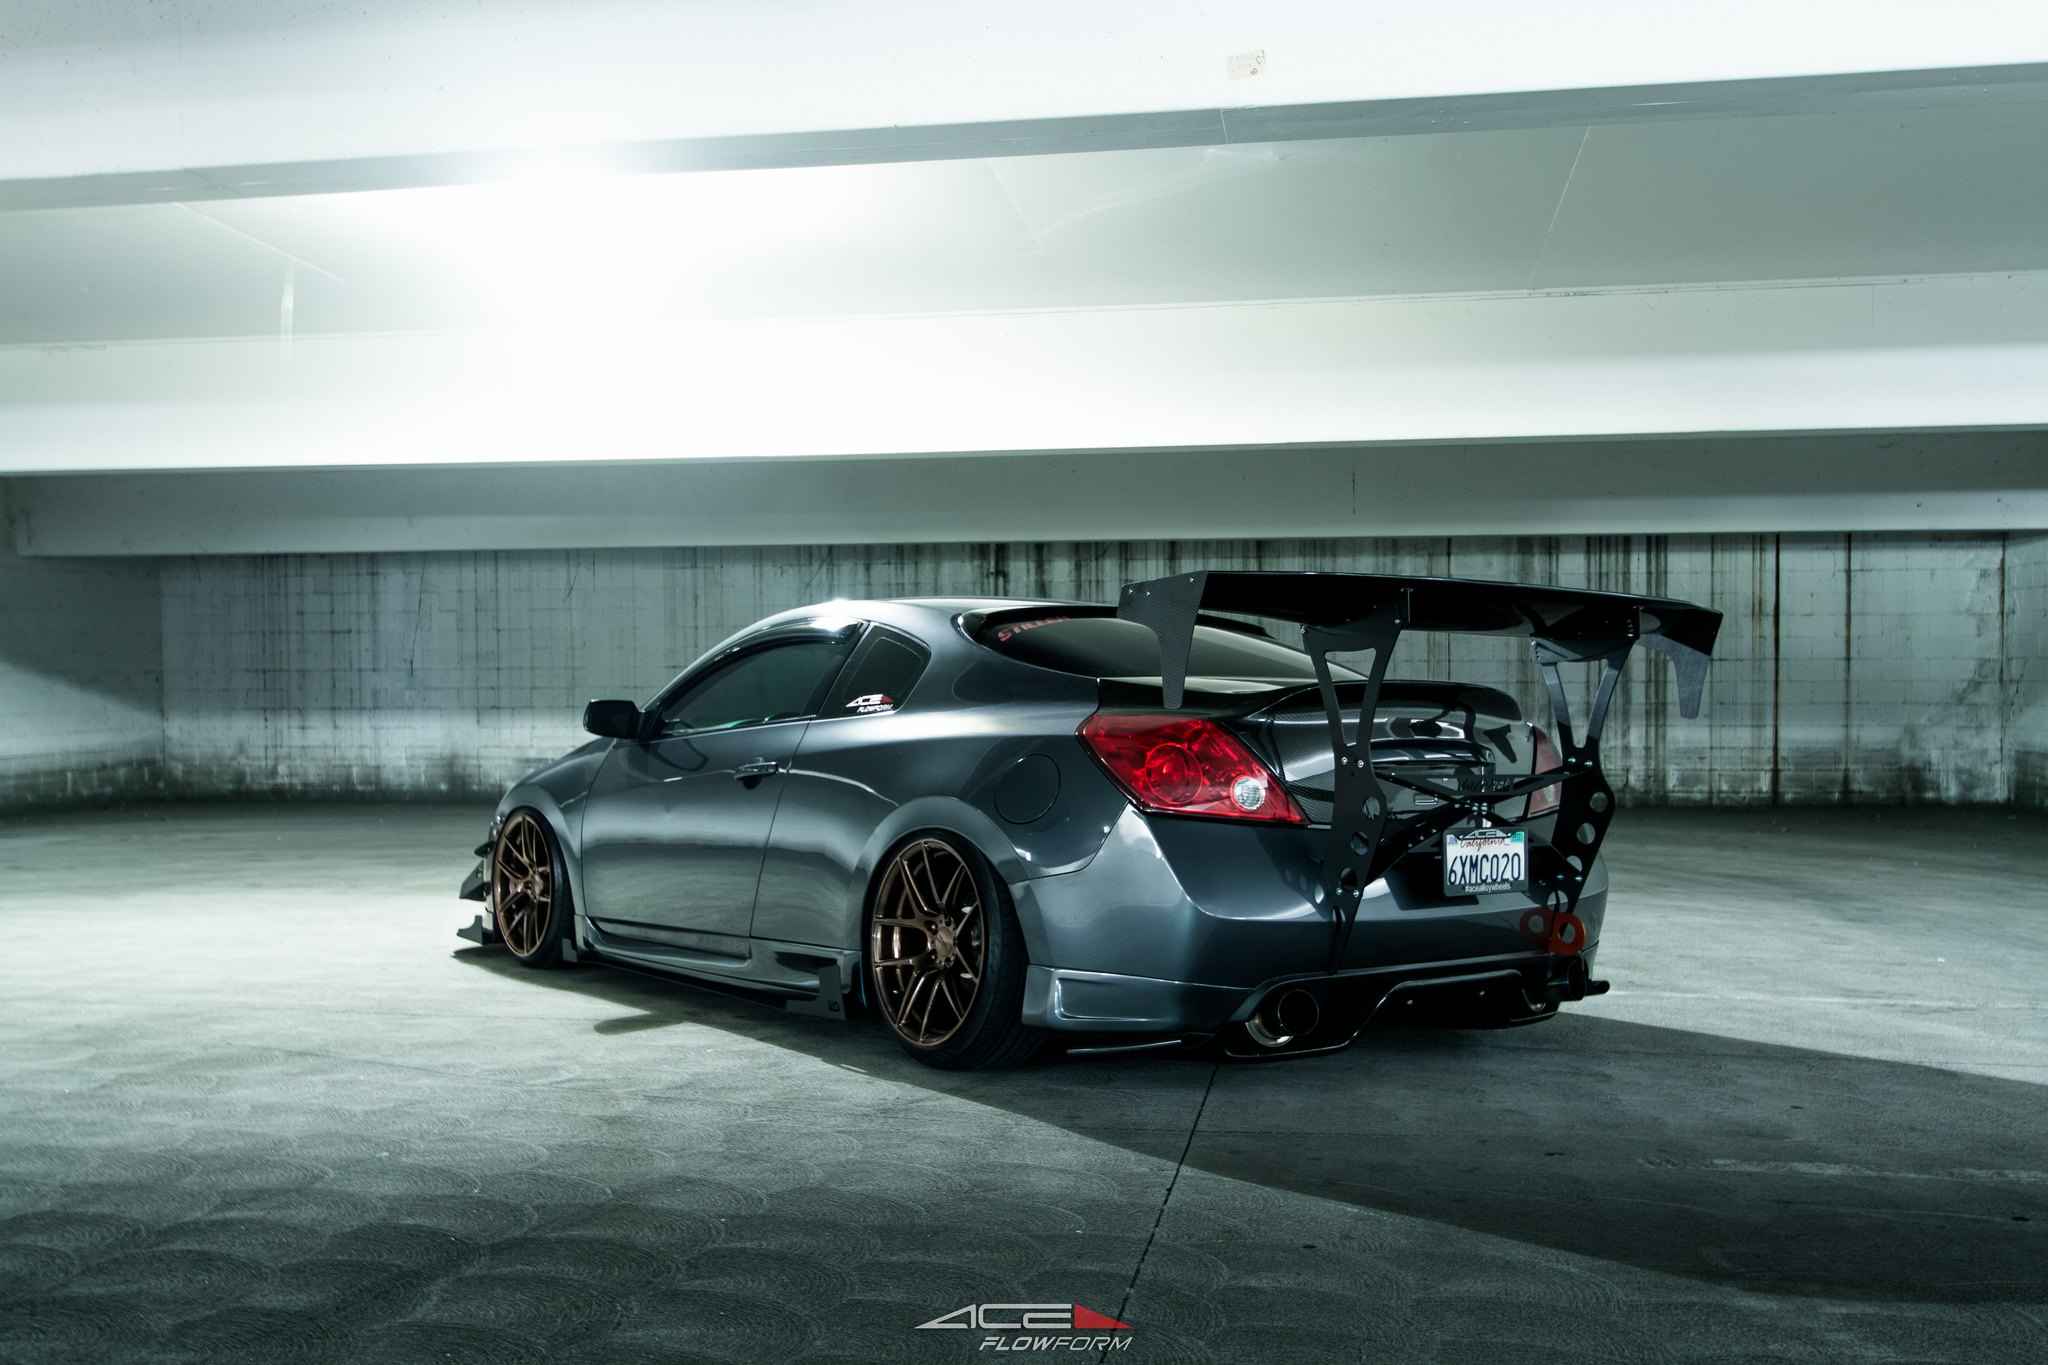 Modified Nissan Altima With Air Suspension And Sport Body